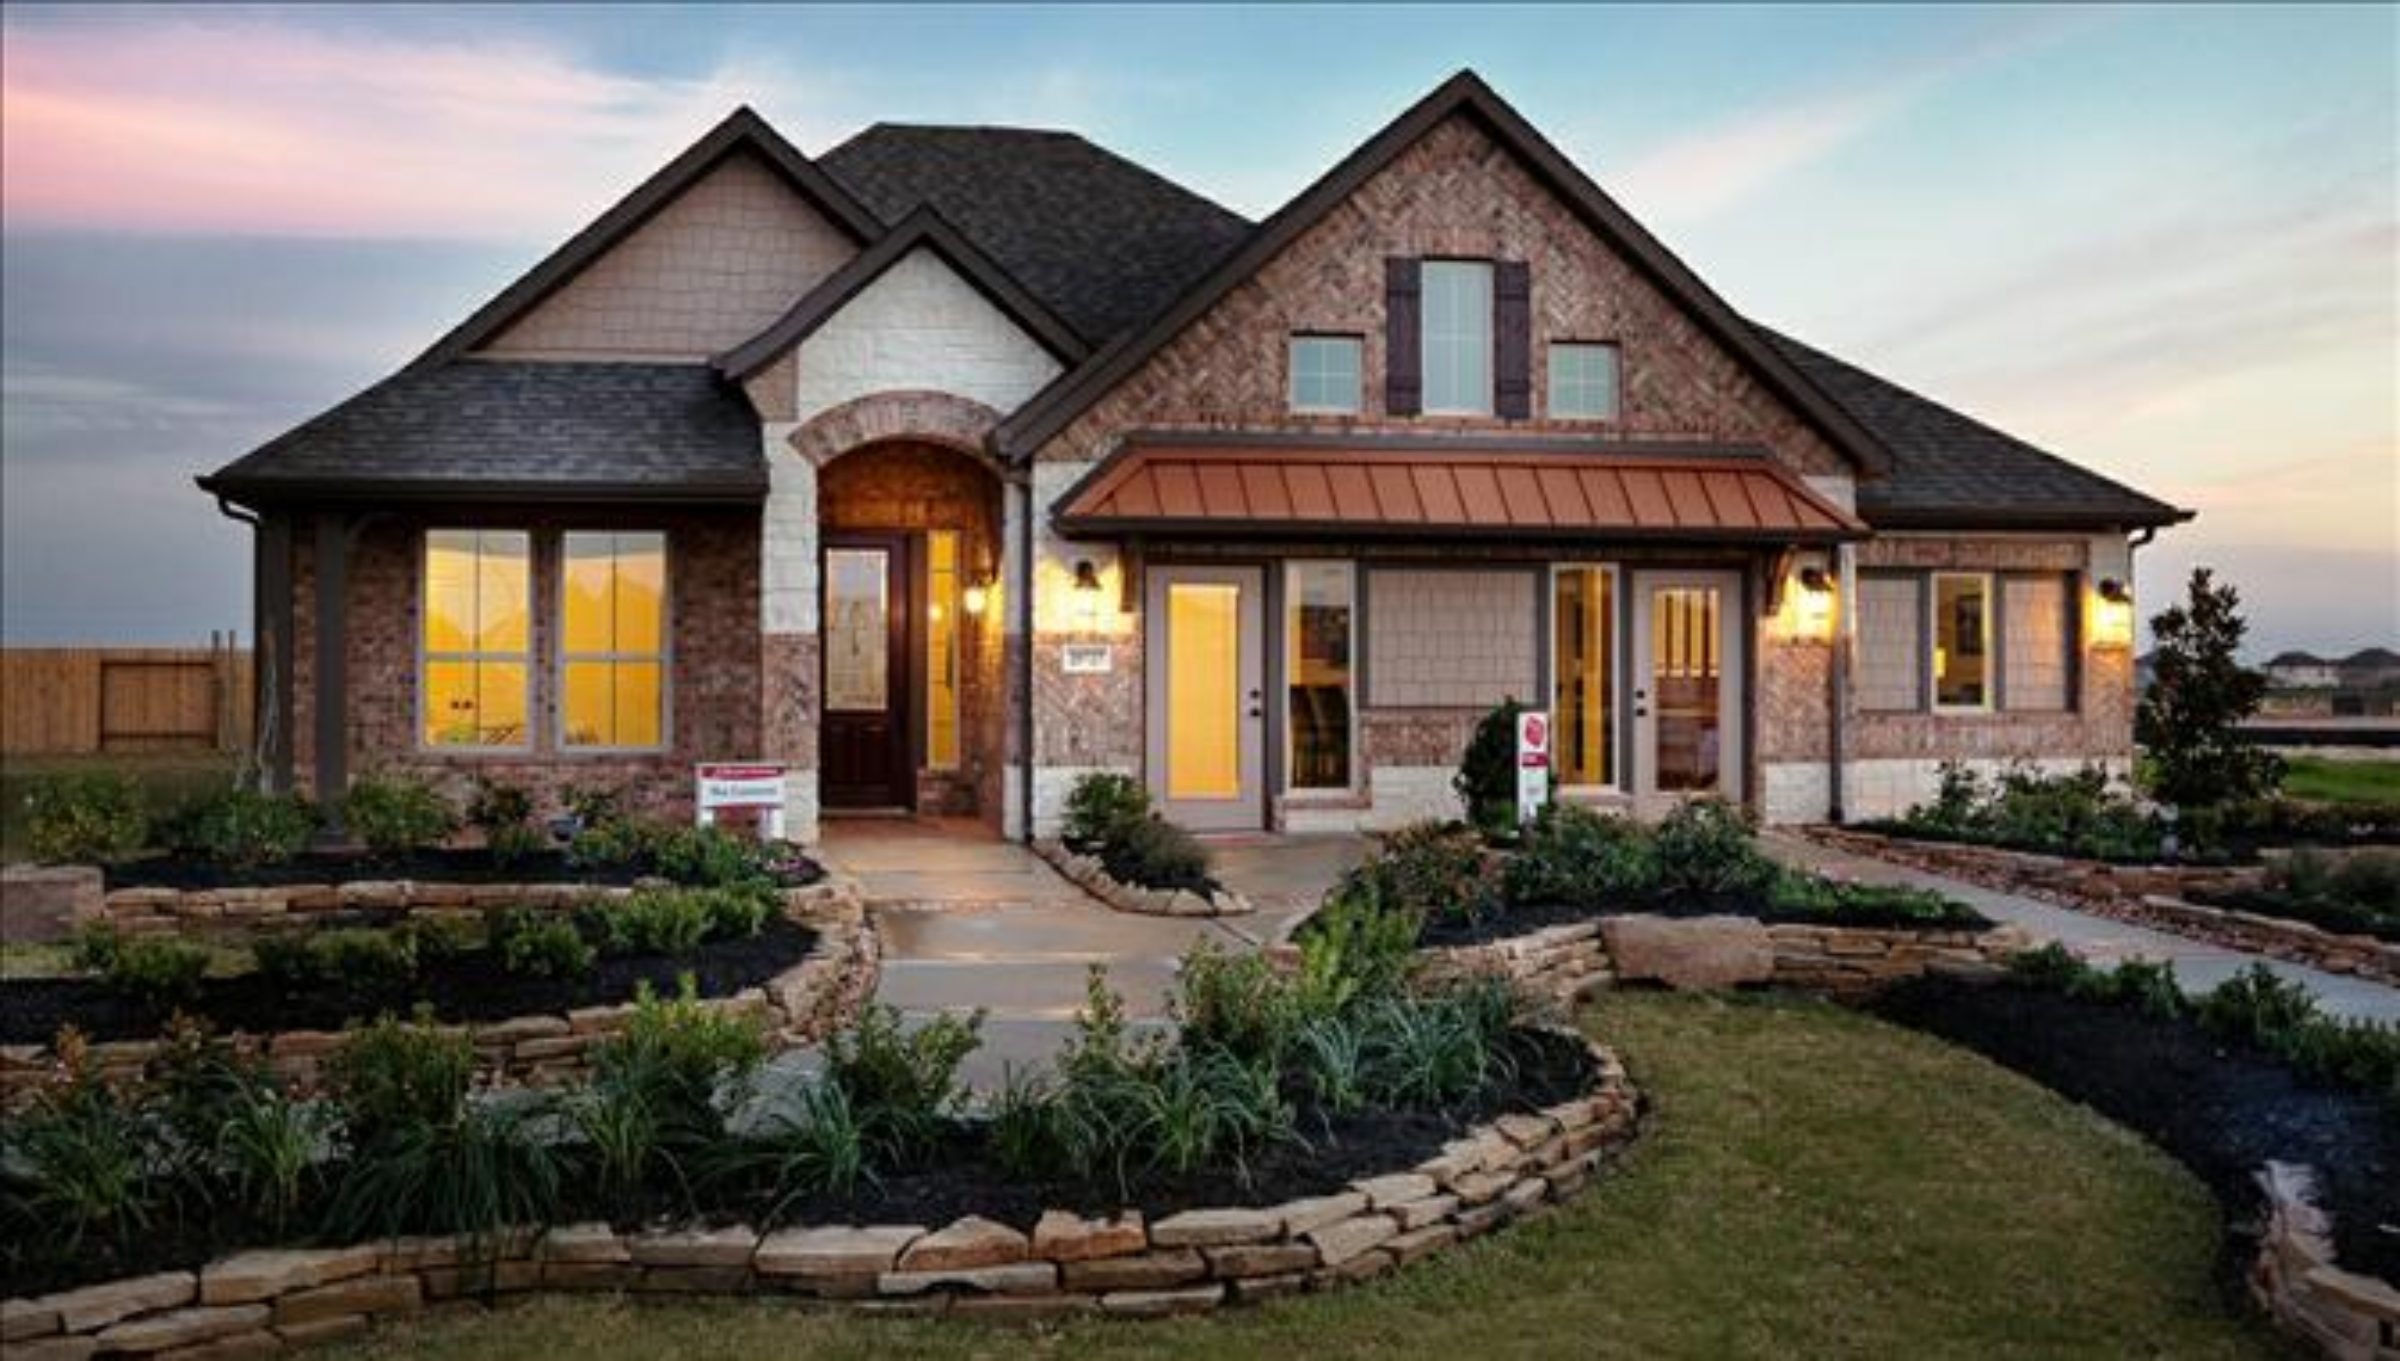 cropped-House-Pic.jpg